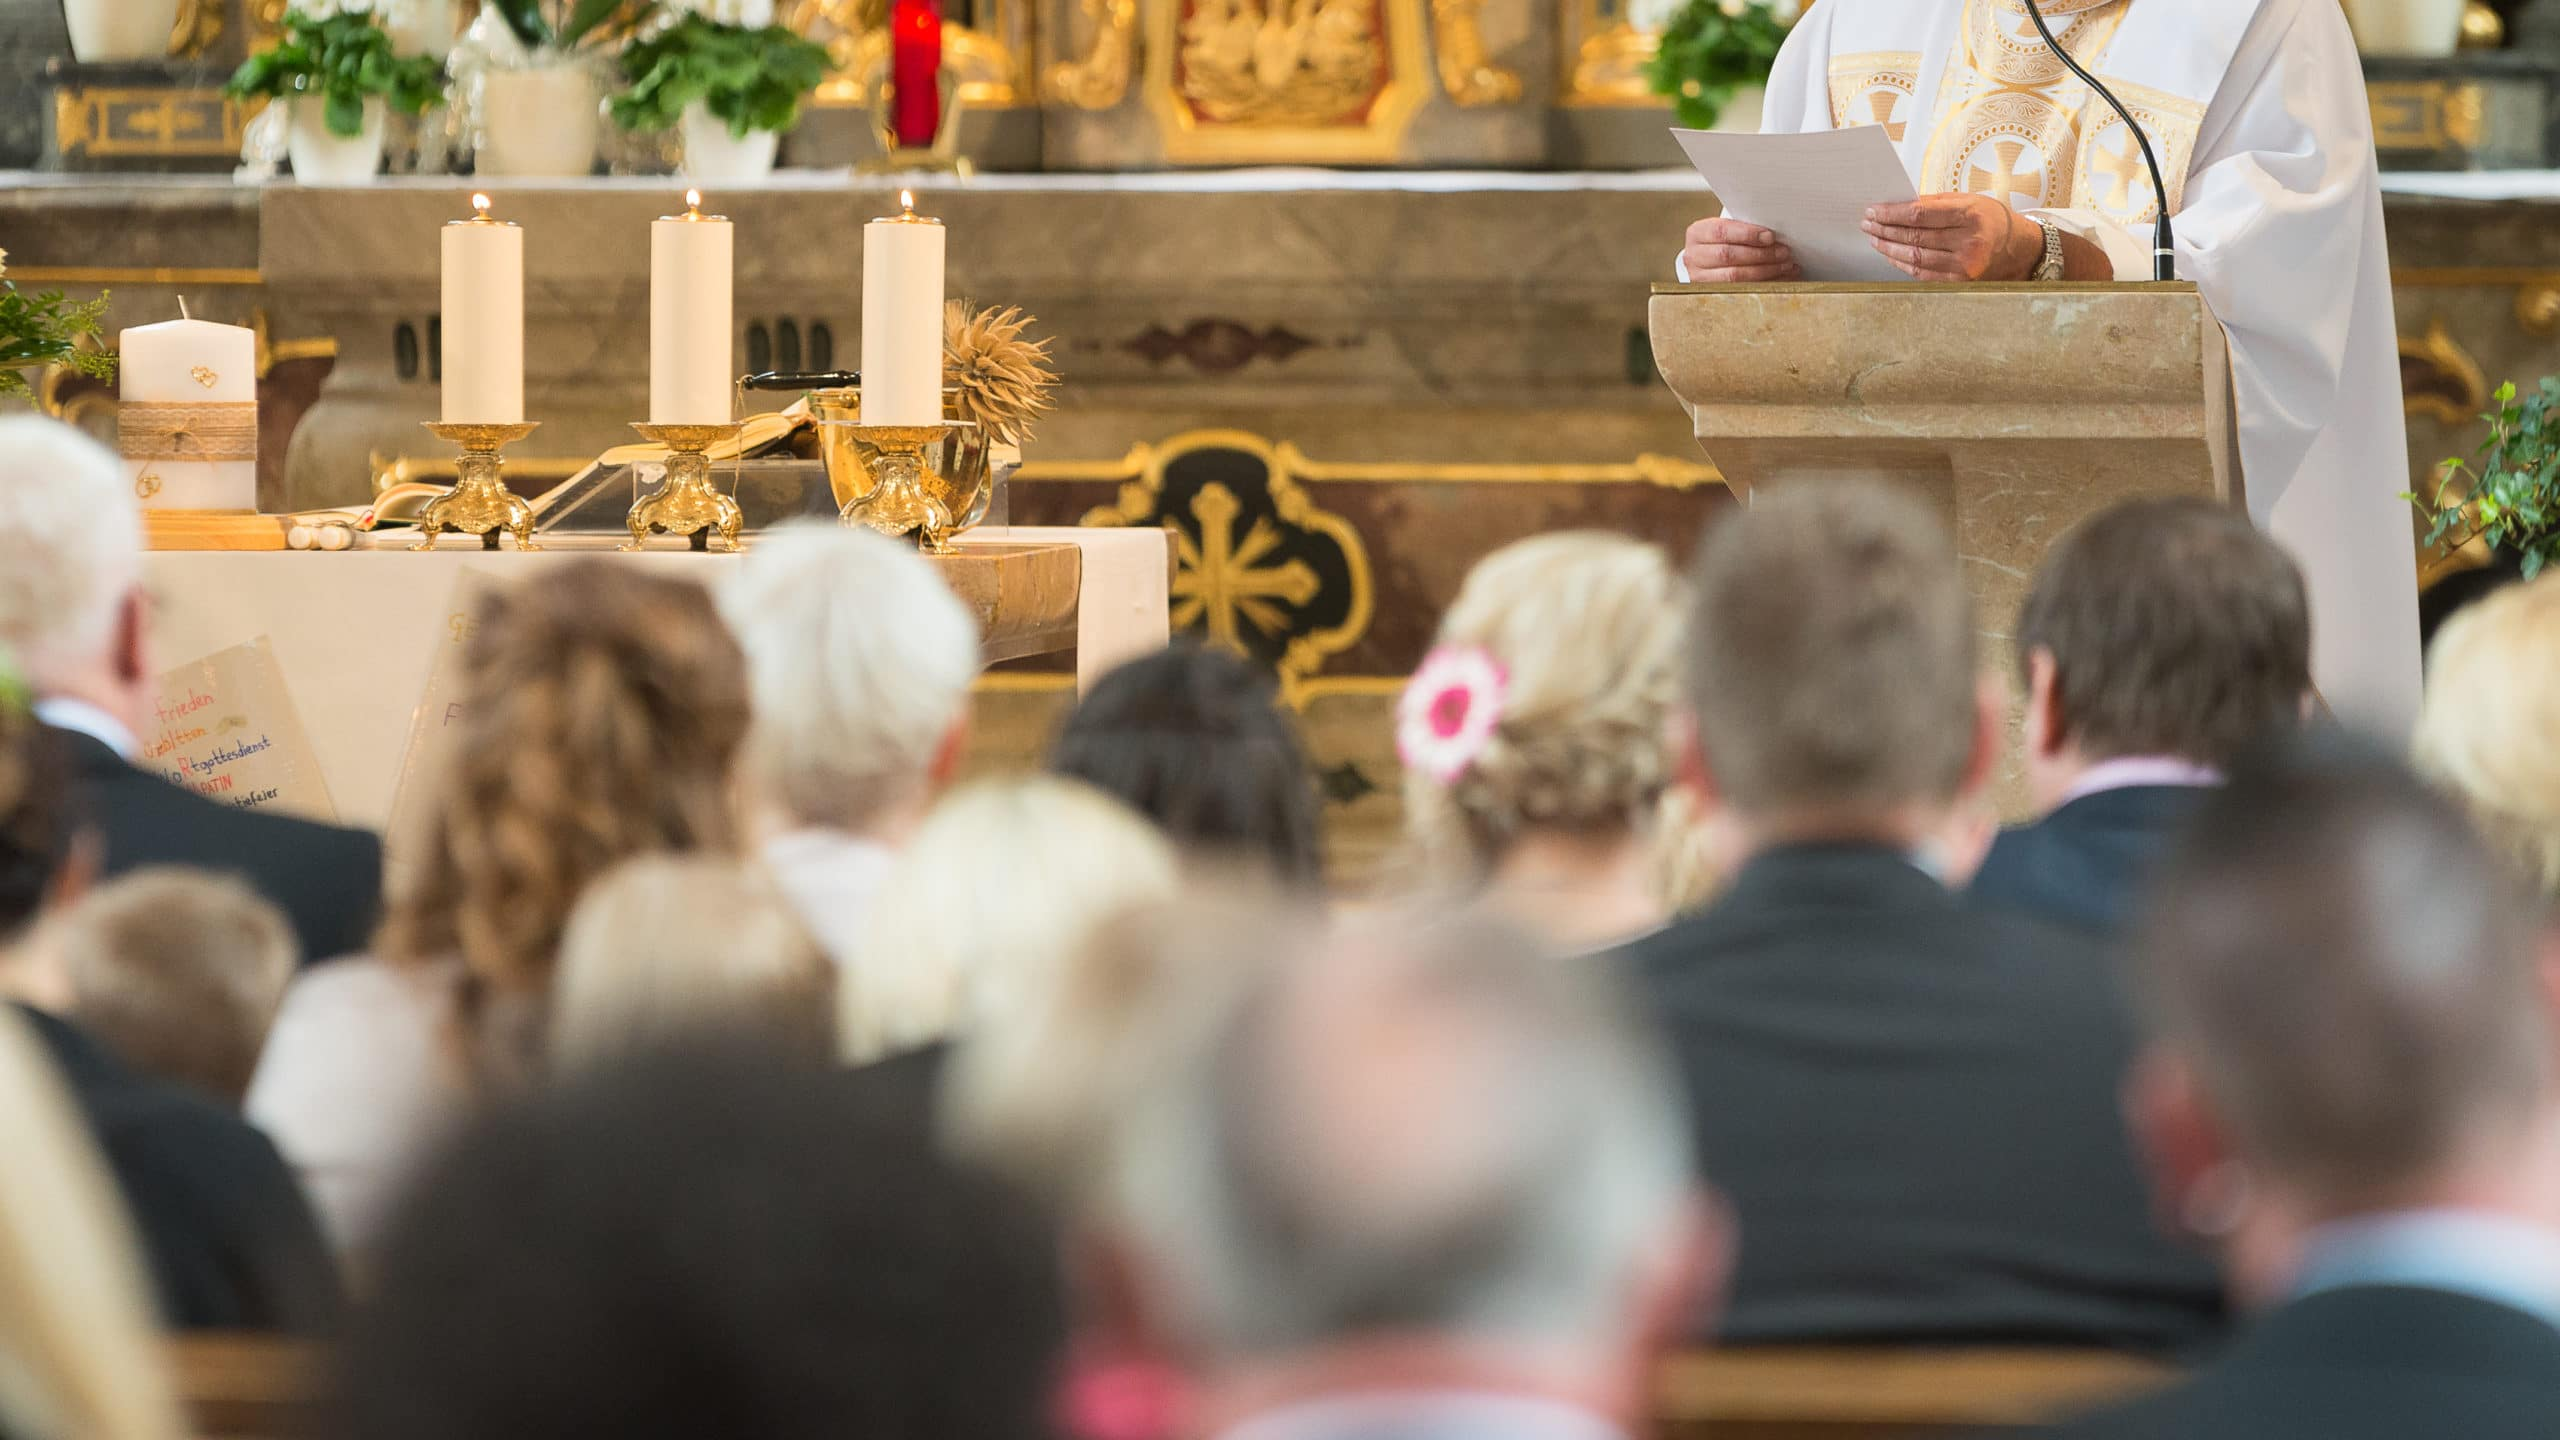 priest giving homily sermon, people listening, in church, catholic Mass